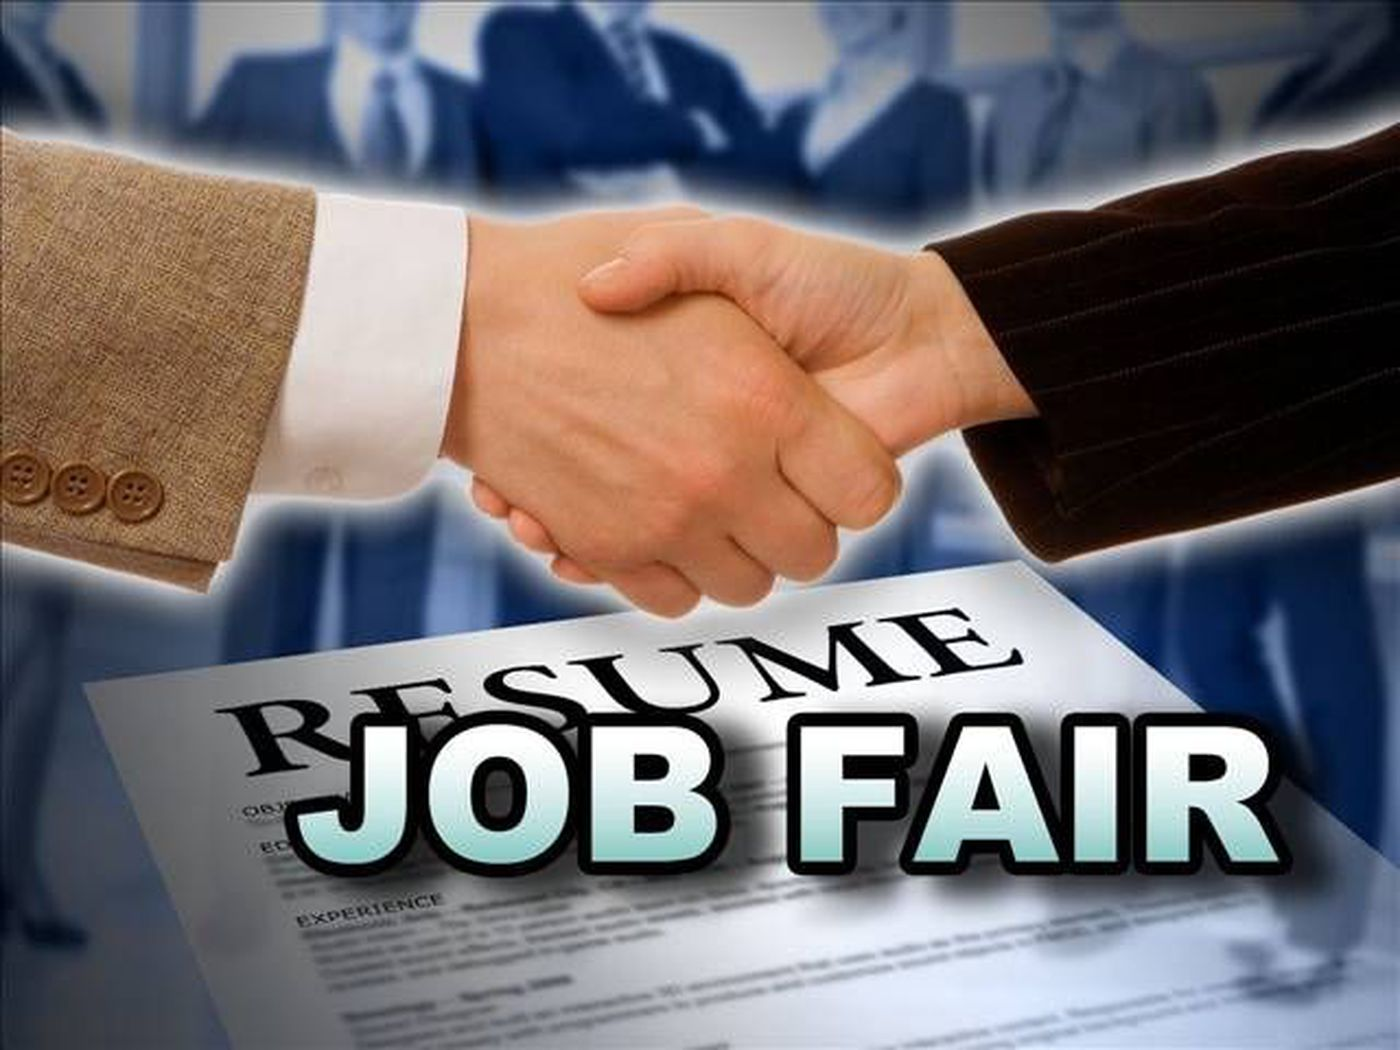 ab9aa21b439 Tanger Outlets to hold job fair